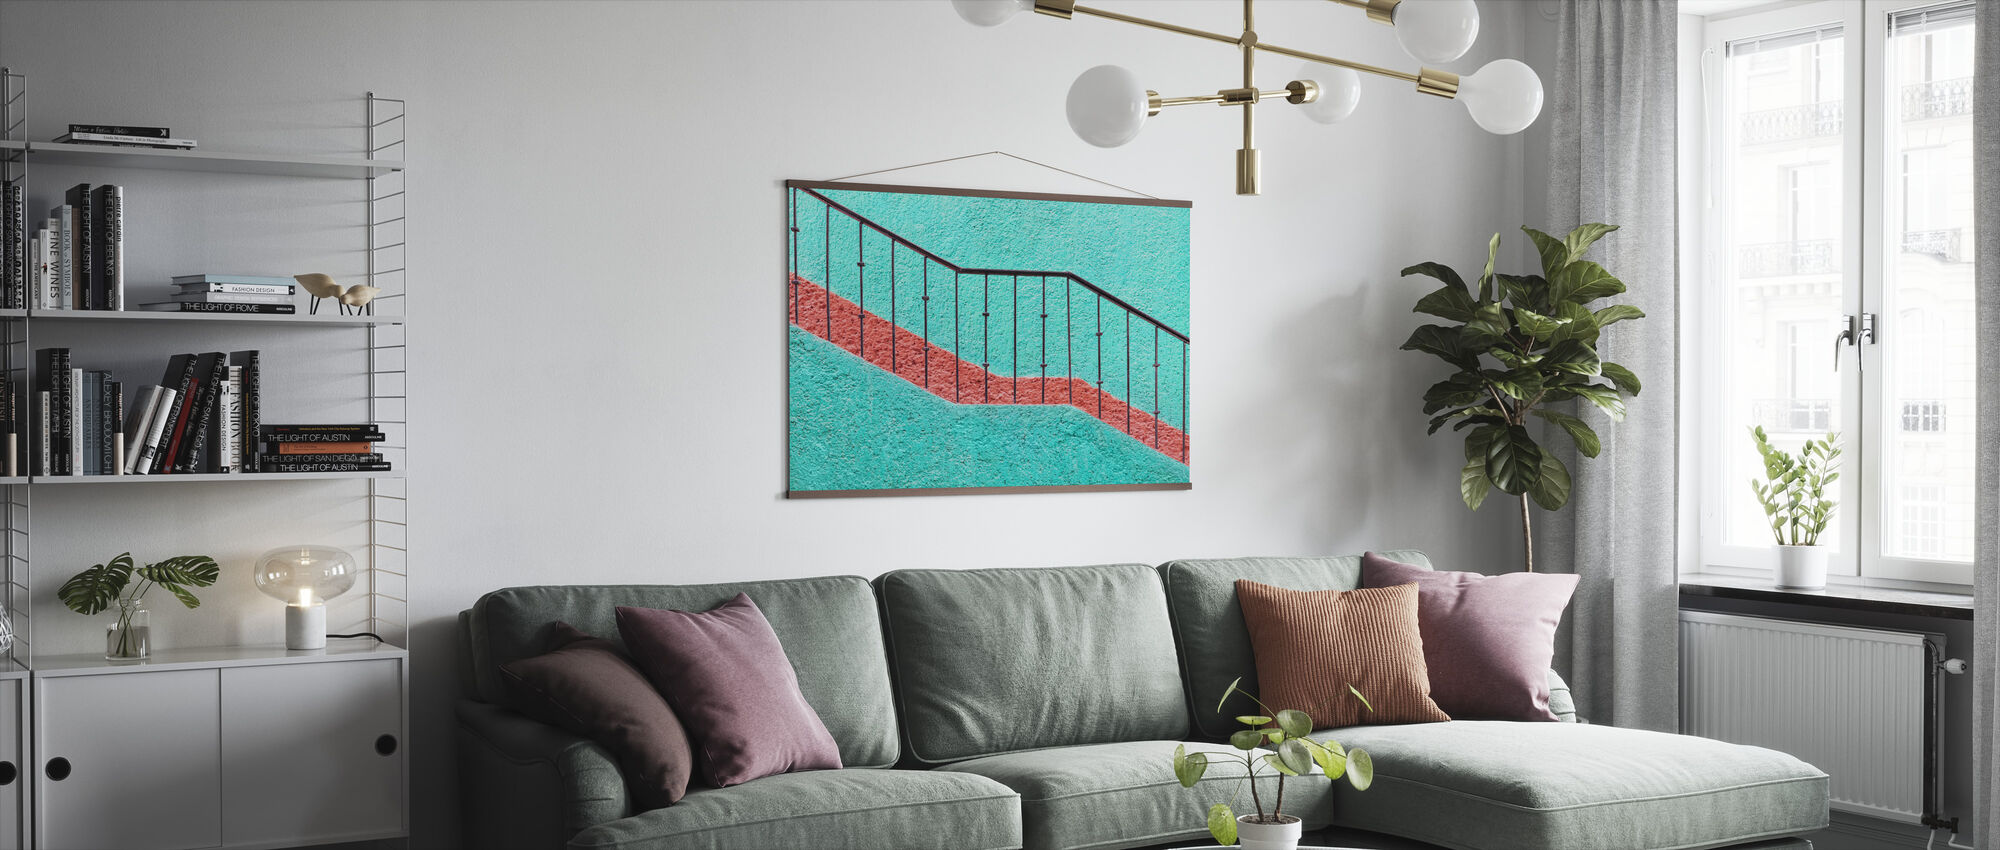 Trappen - Poster - Woonkamer